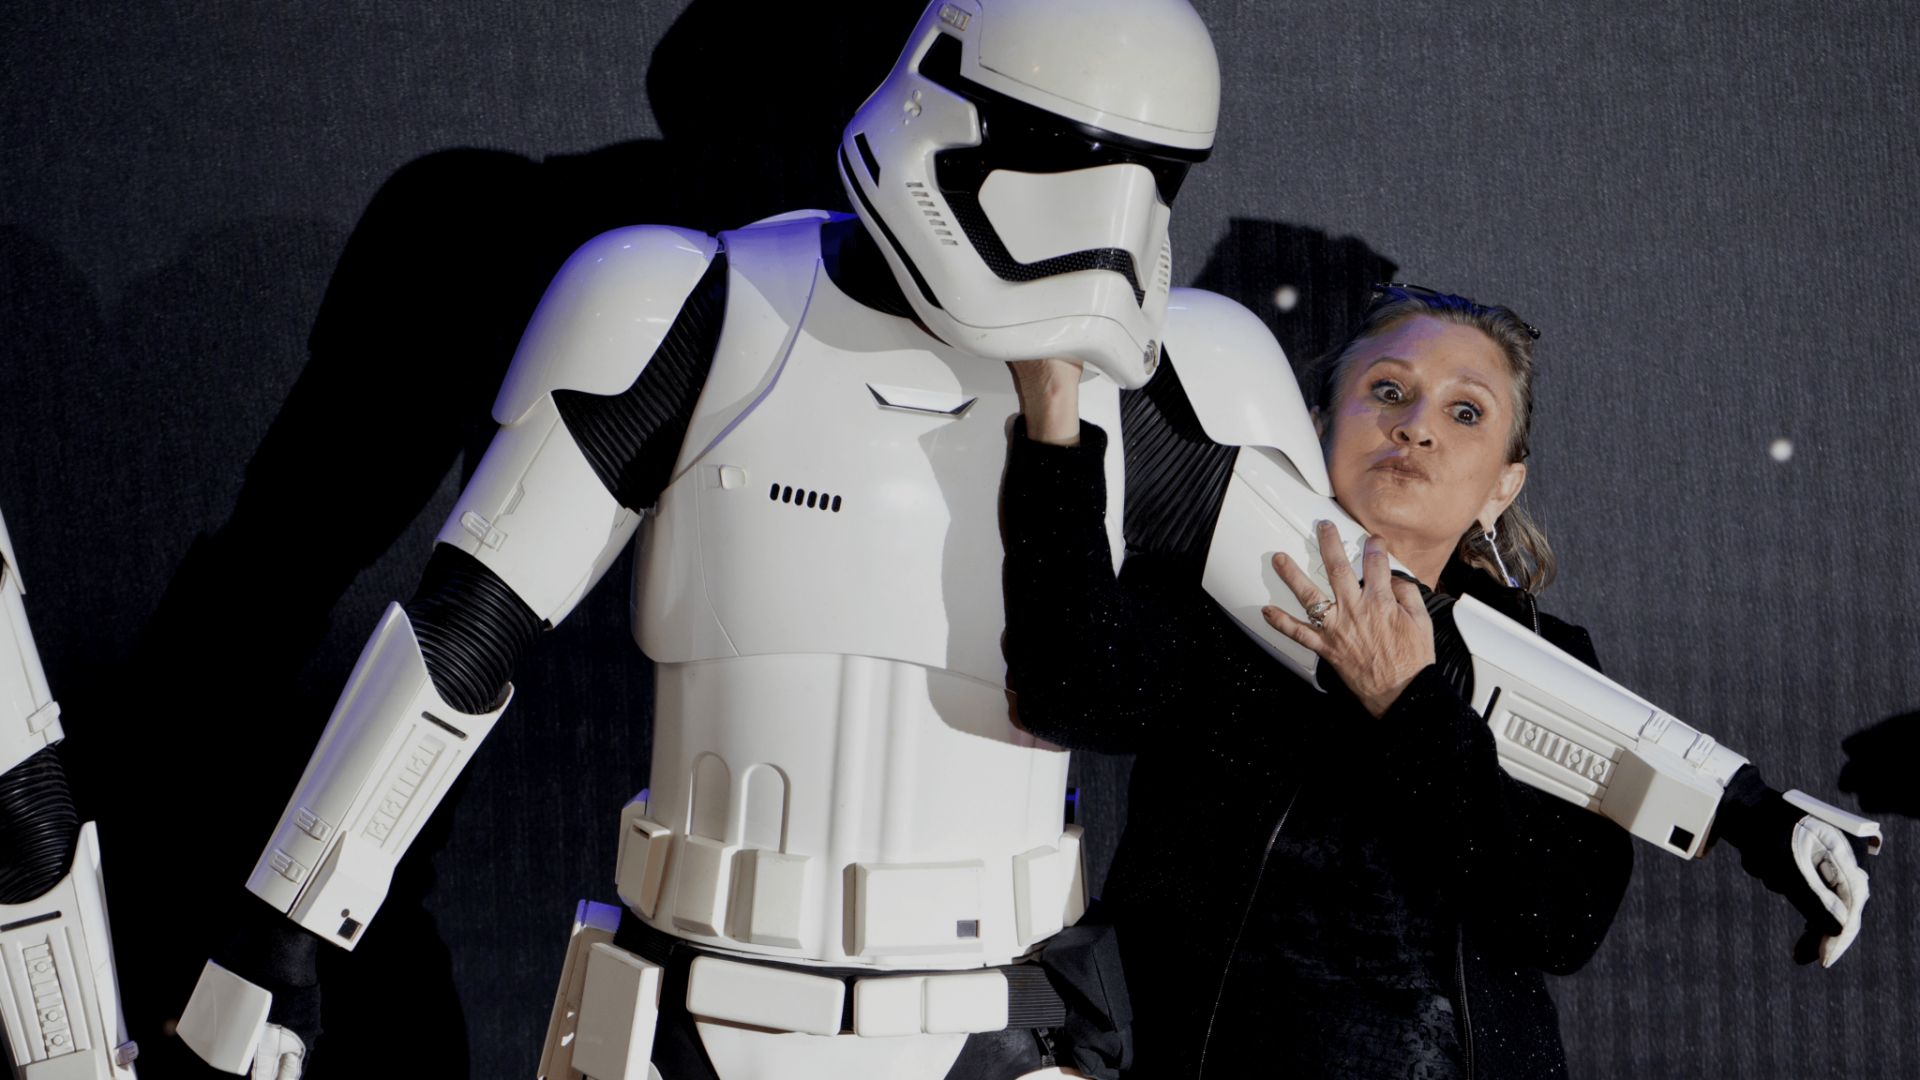 Carrie Fisher with a Stormtrooper at the UK premiere of Star Wars: The Force Awakens